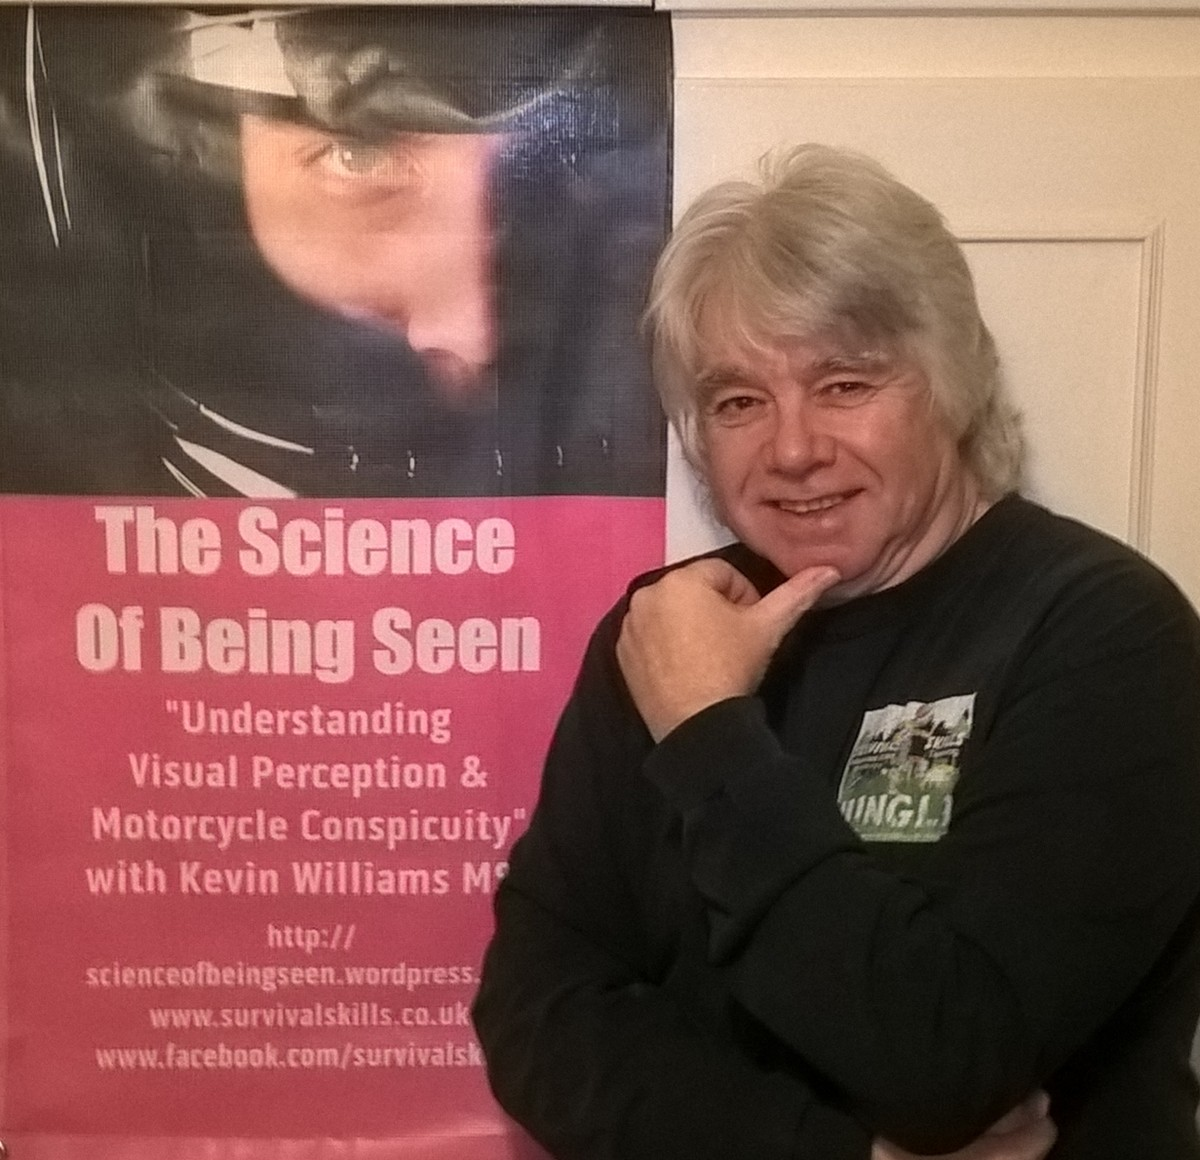 Survival Skills – ON-ROAD & ONLINECOACHING!